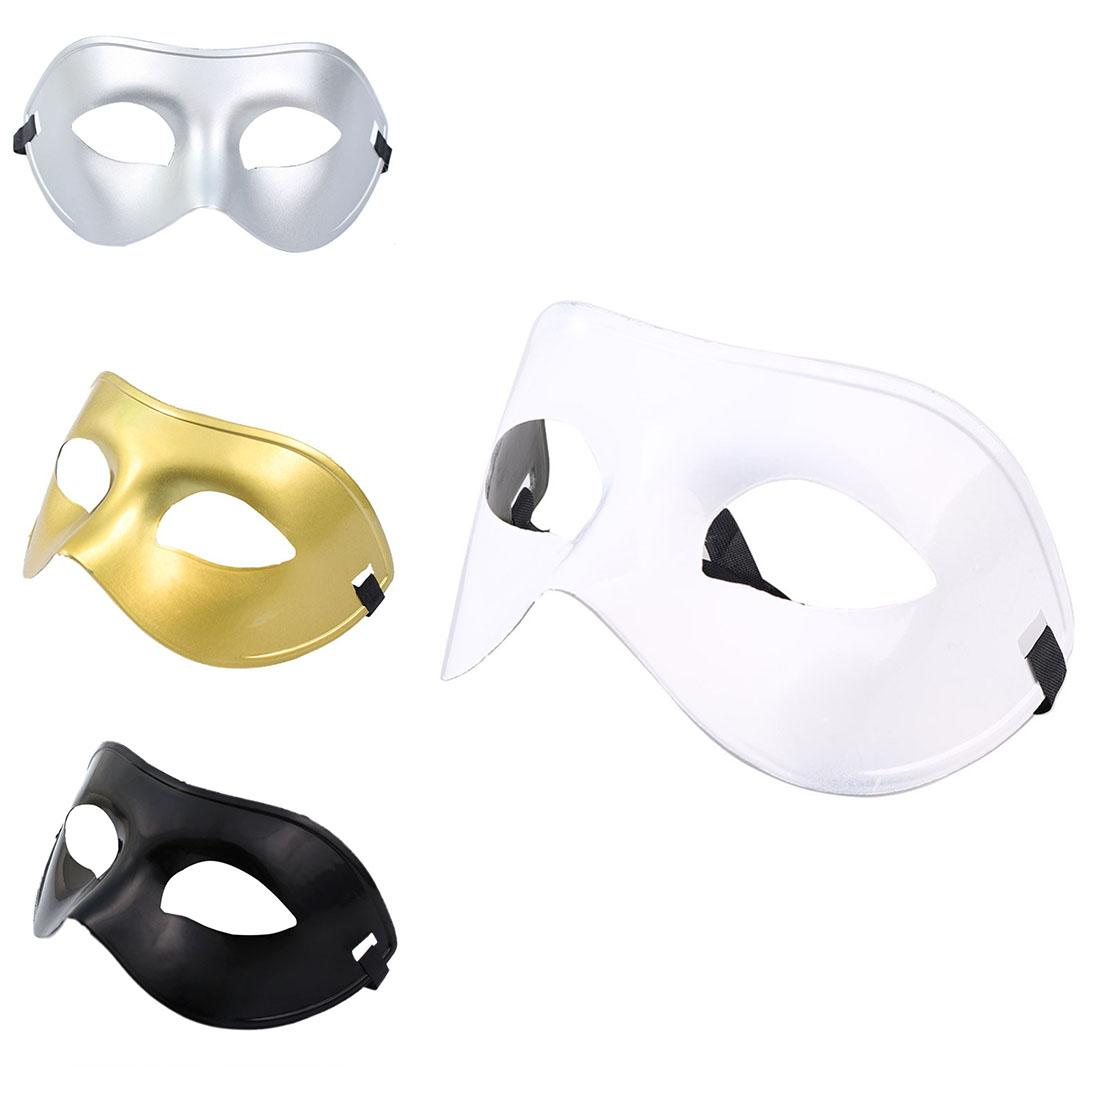 Wholesale-New Classic Women/Men Venetian Masquerade Half Face Mask for Party Costume Ball Fancy Dress Costume